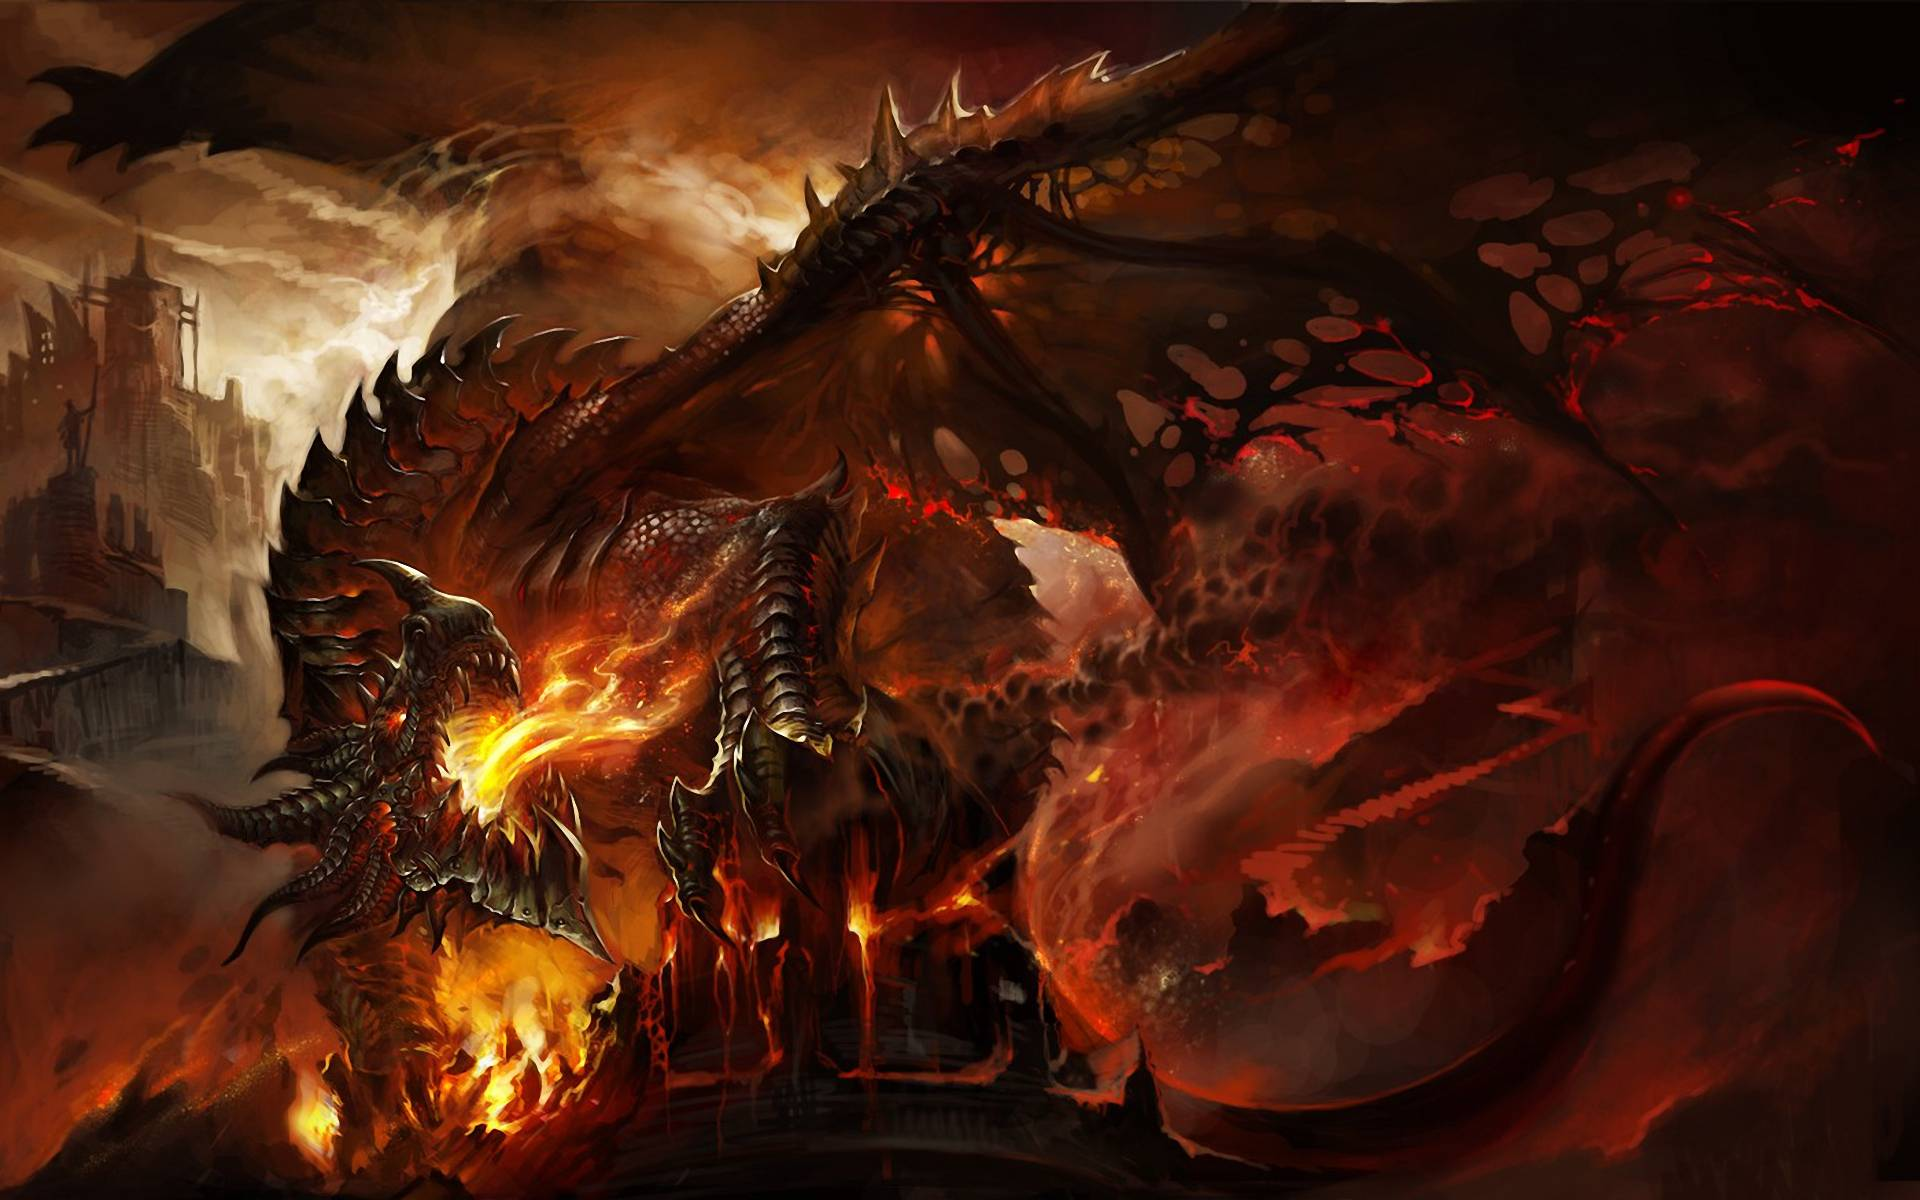 deathwing 40k art - photo #34